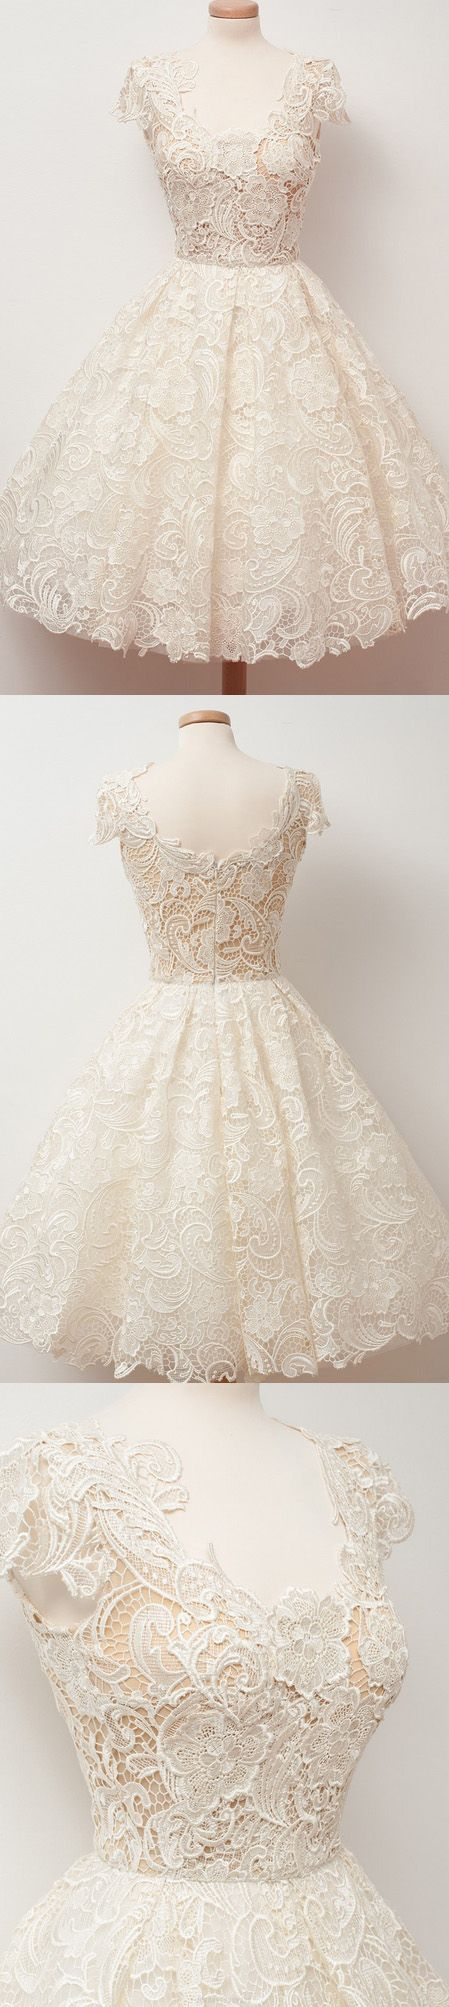 I like this lace very much ~CSS♡